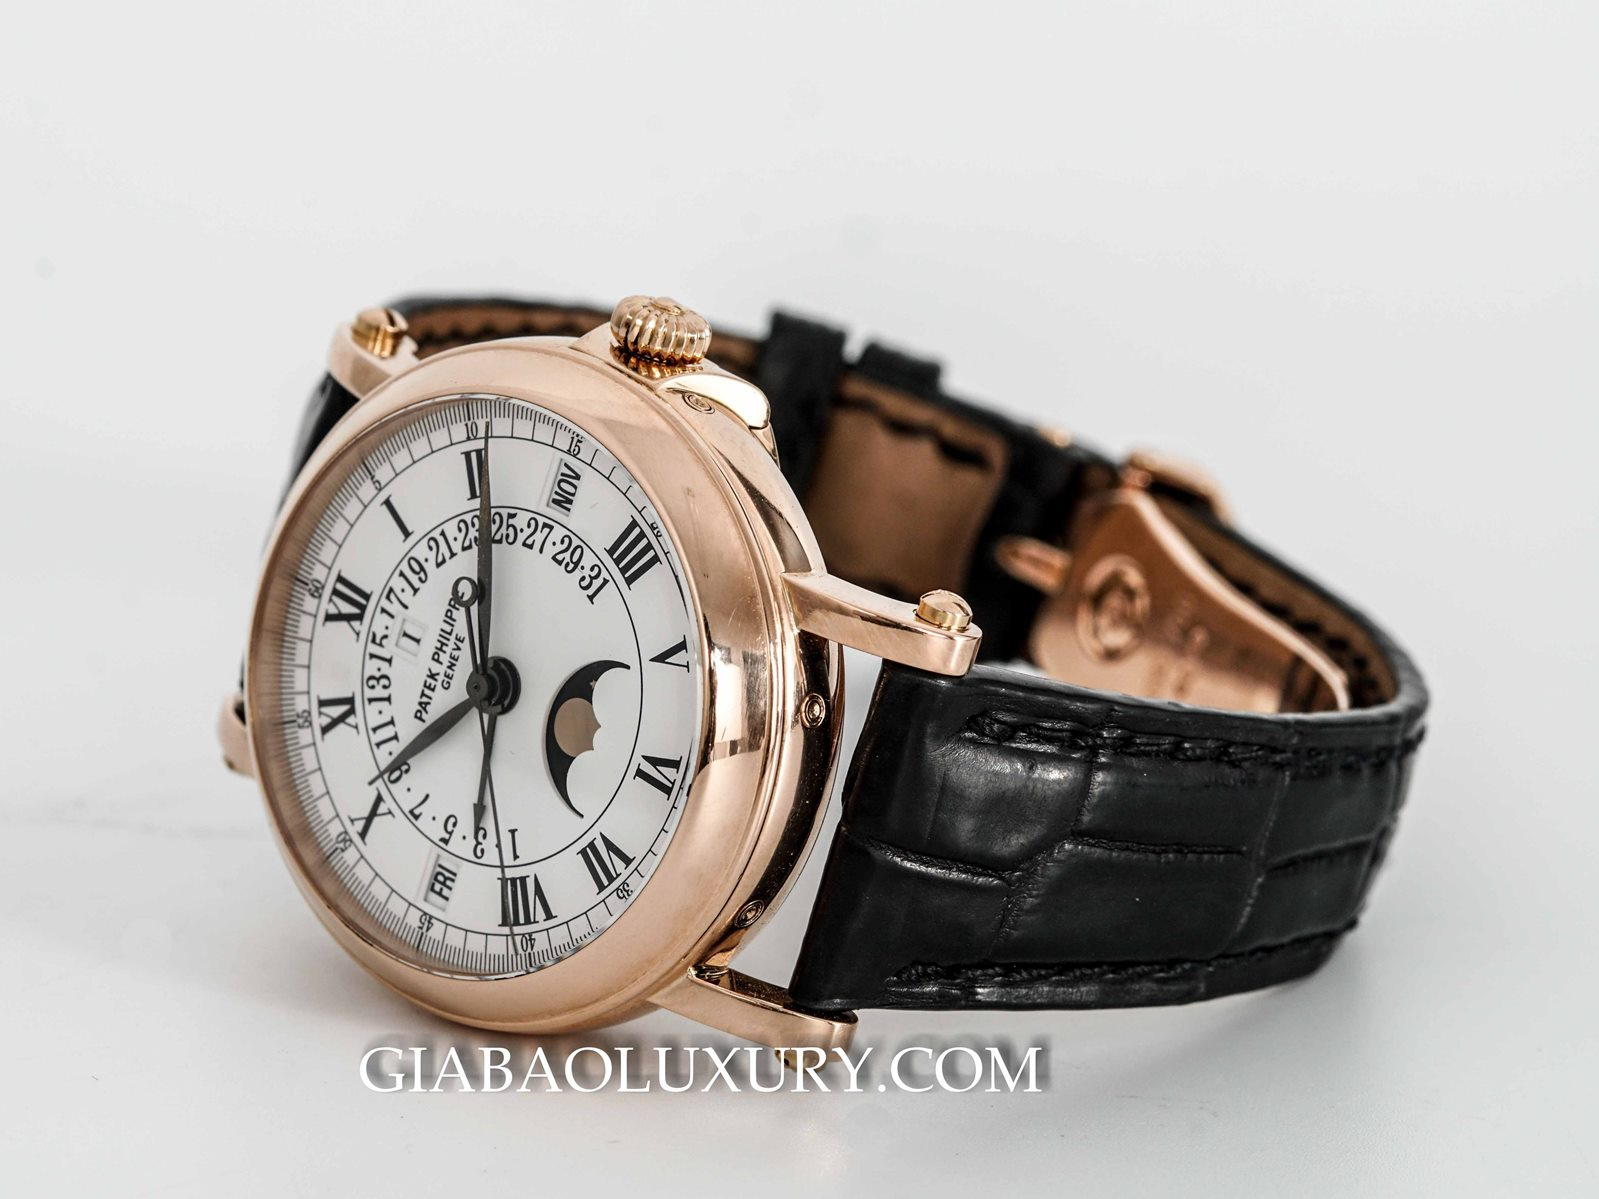 Đồng Hồ Patek Philippe Grand Complications 5059R-001